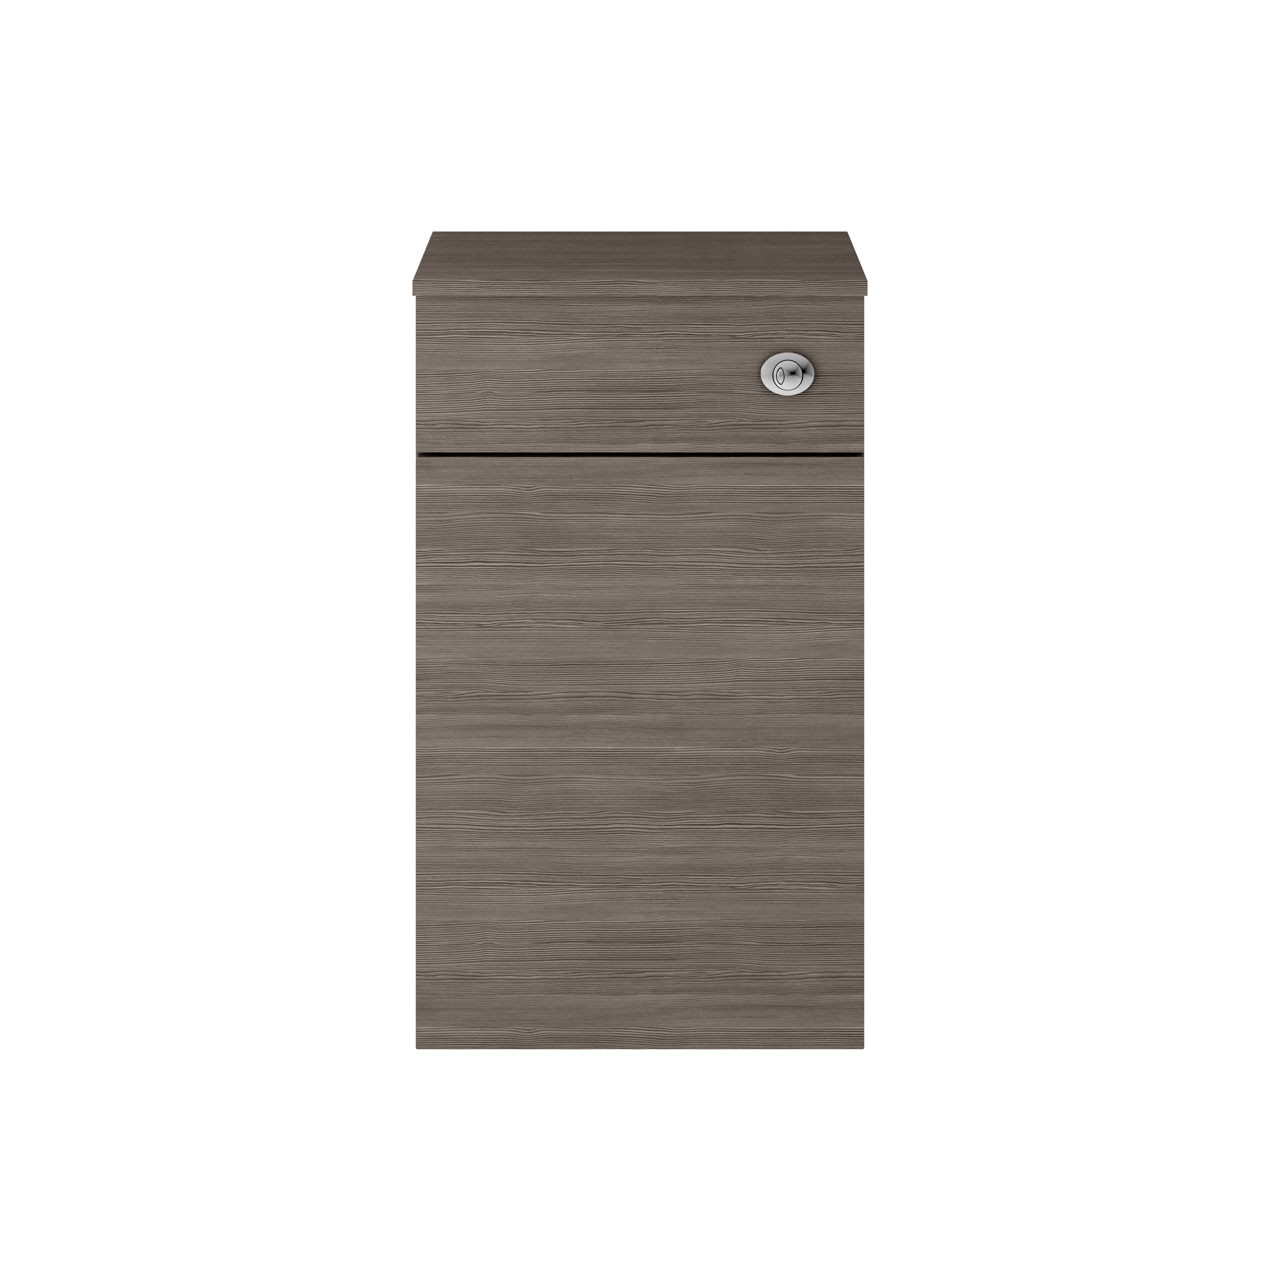 Premier Athena Grey Avola 500mm Toilet Unit - MOD542